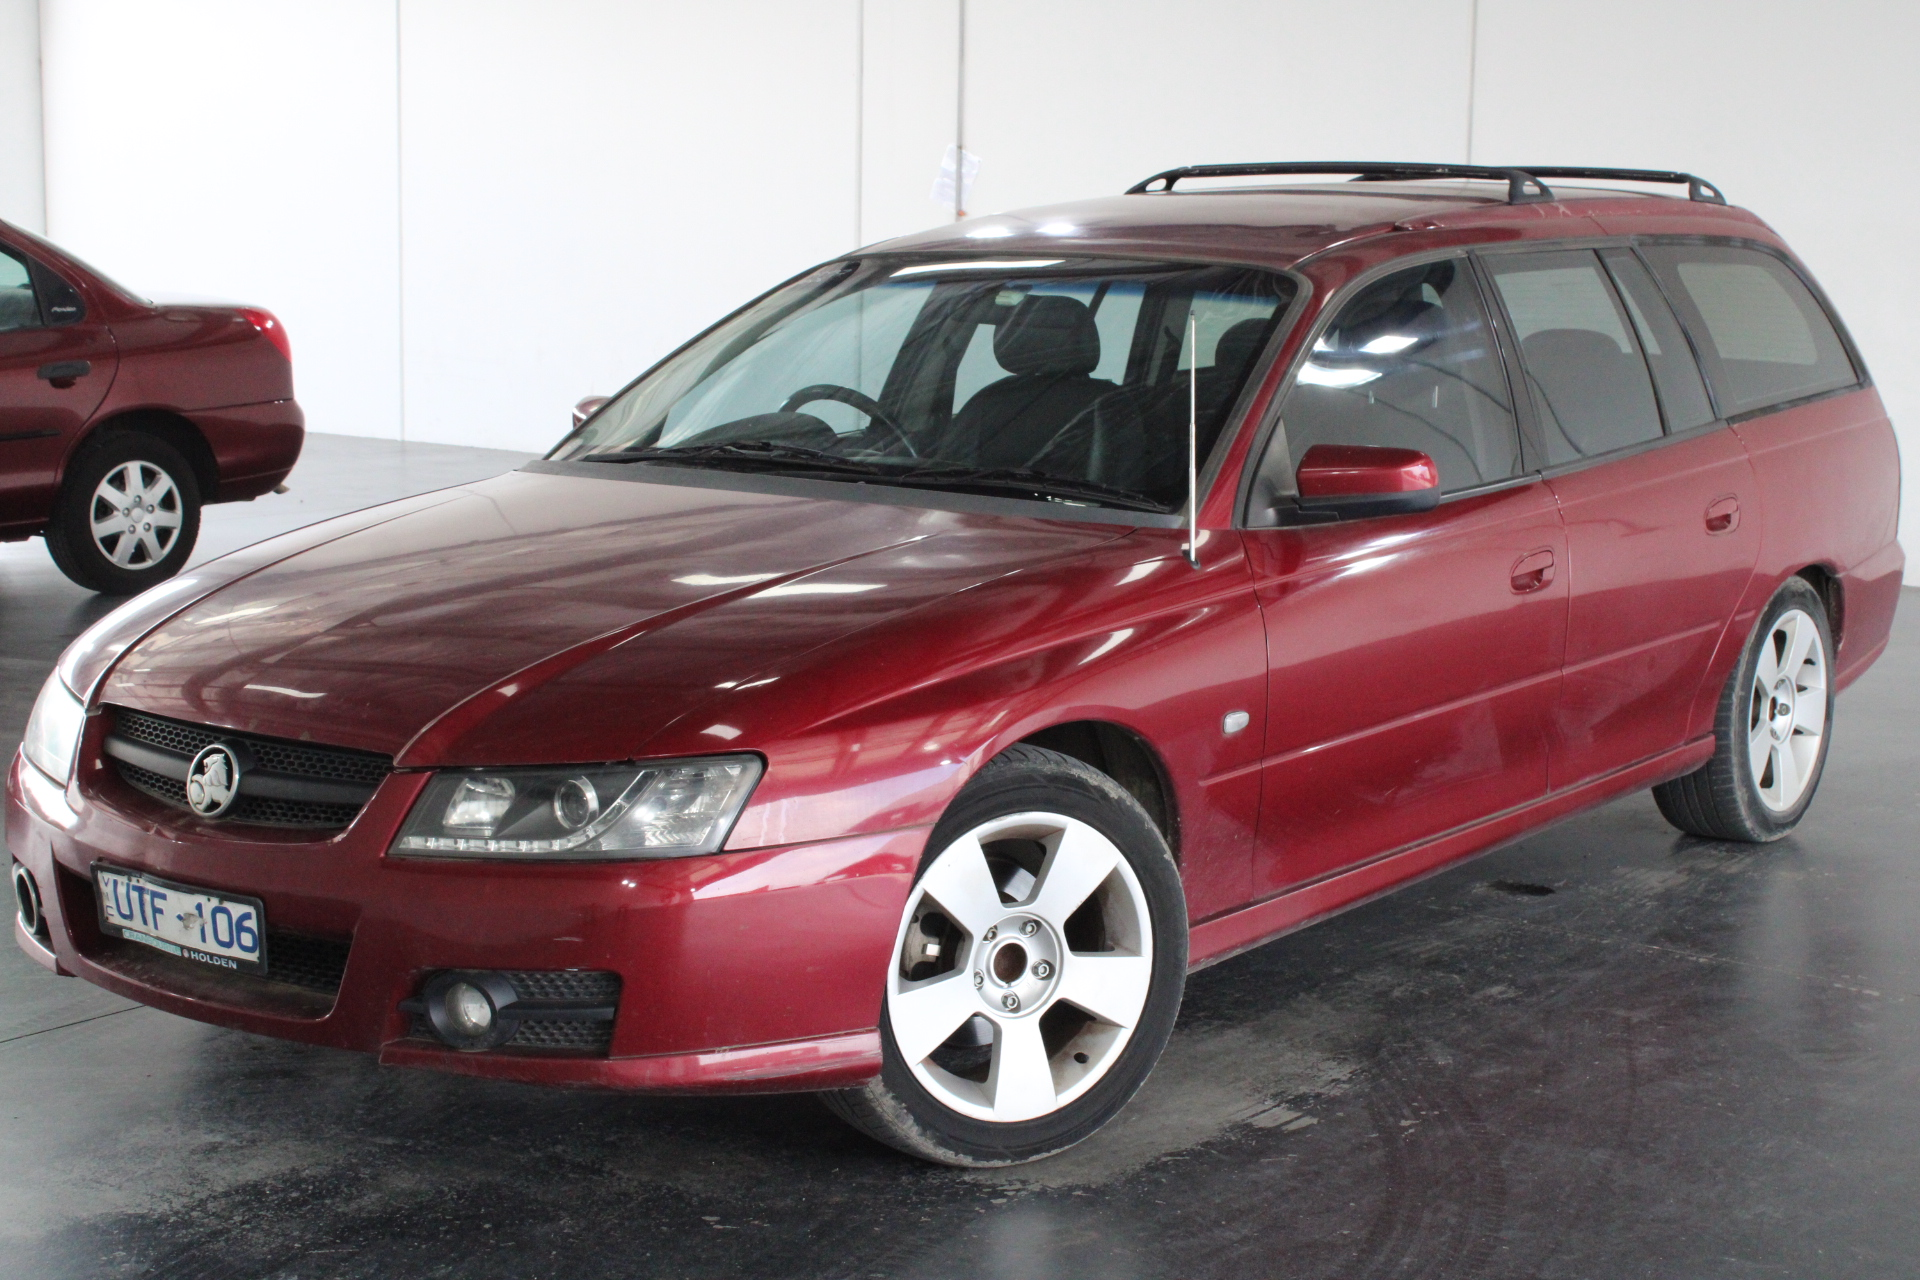 2007 Holden Commodore SVZ VZ Automatic Wagon